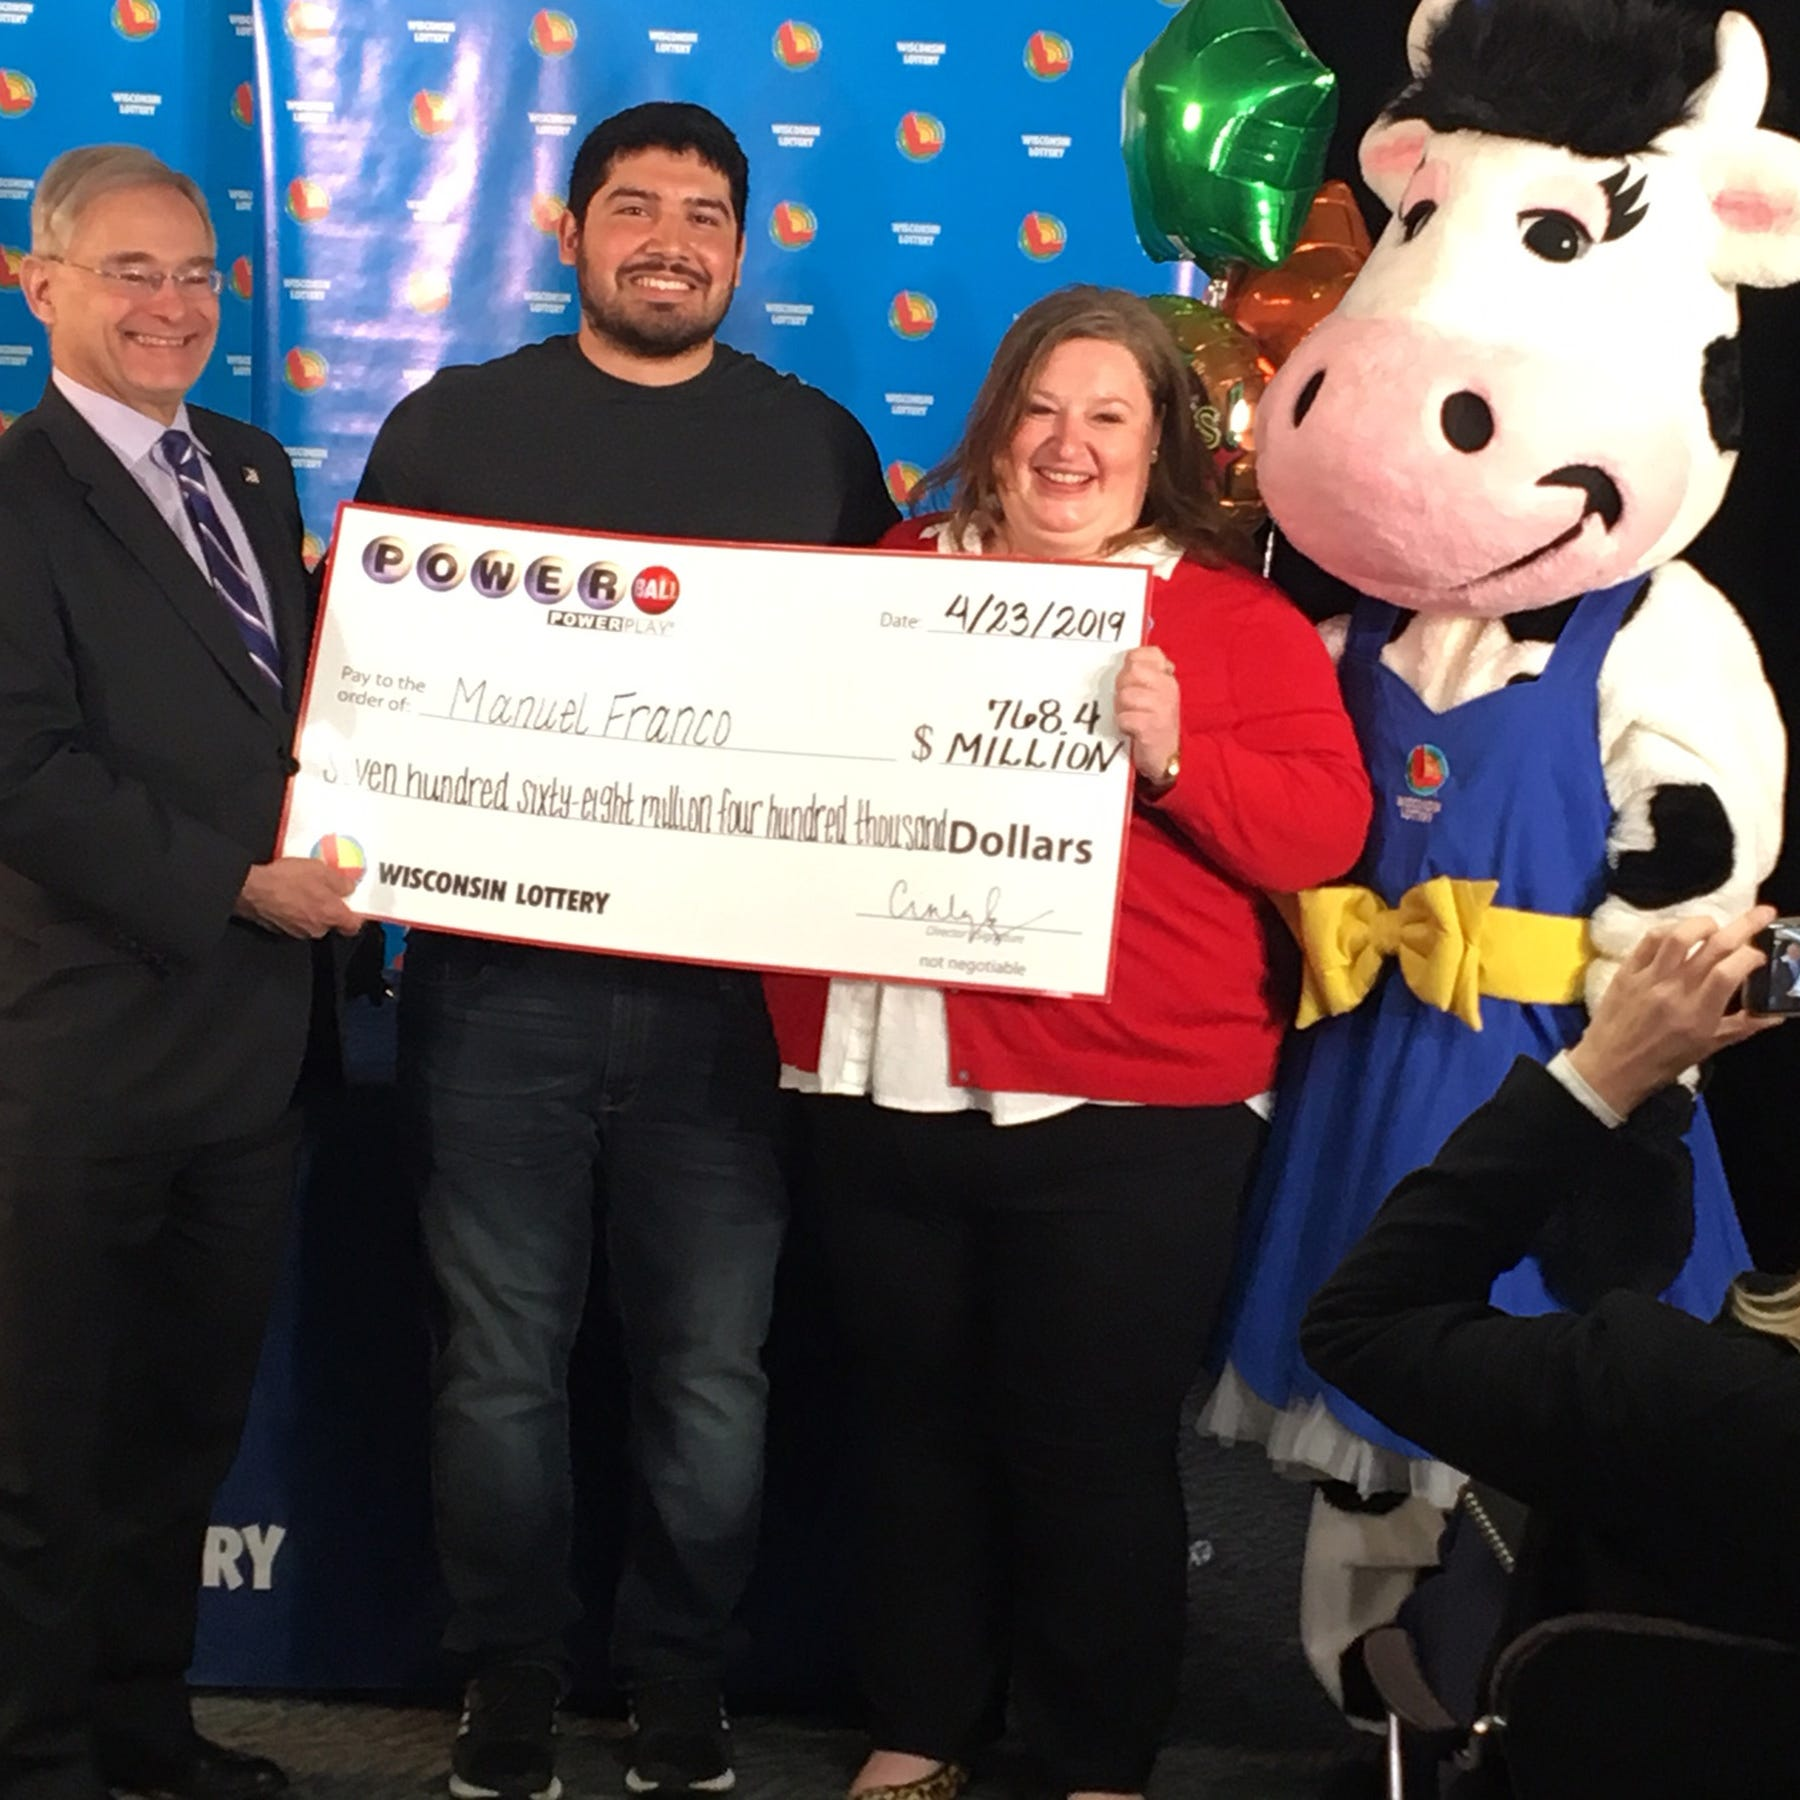 West Allis man wins $768 million Powerball jackpot had a 'lucky feeling' after he purchased ticket